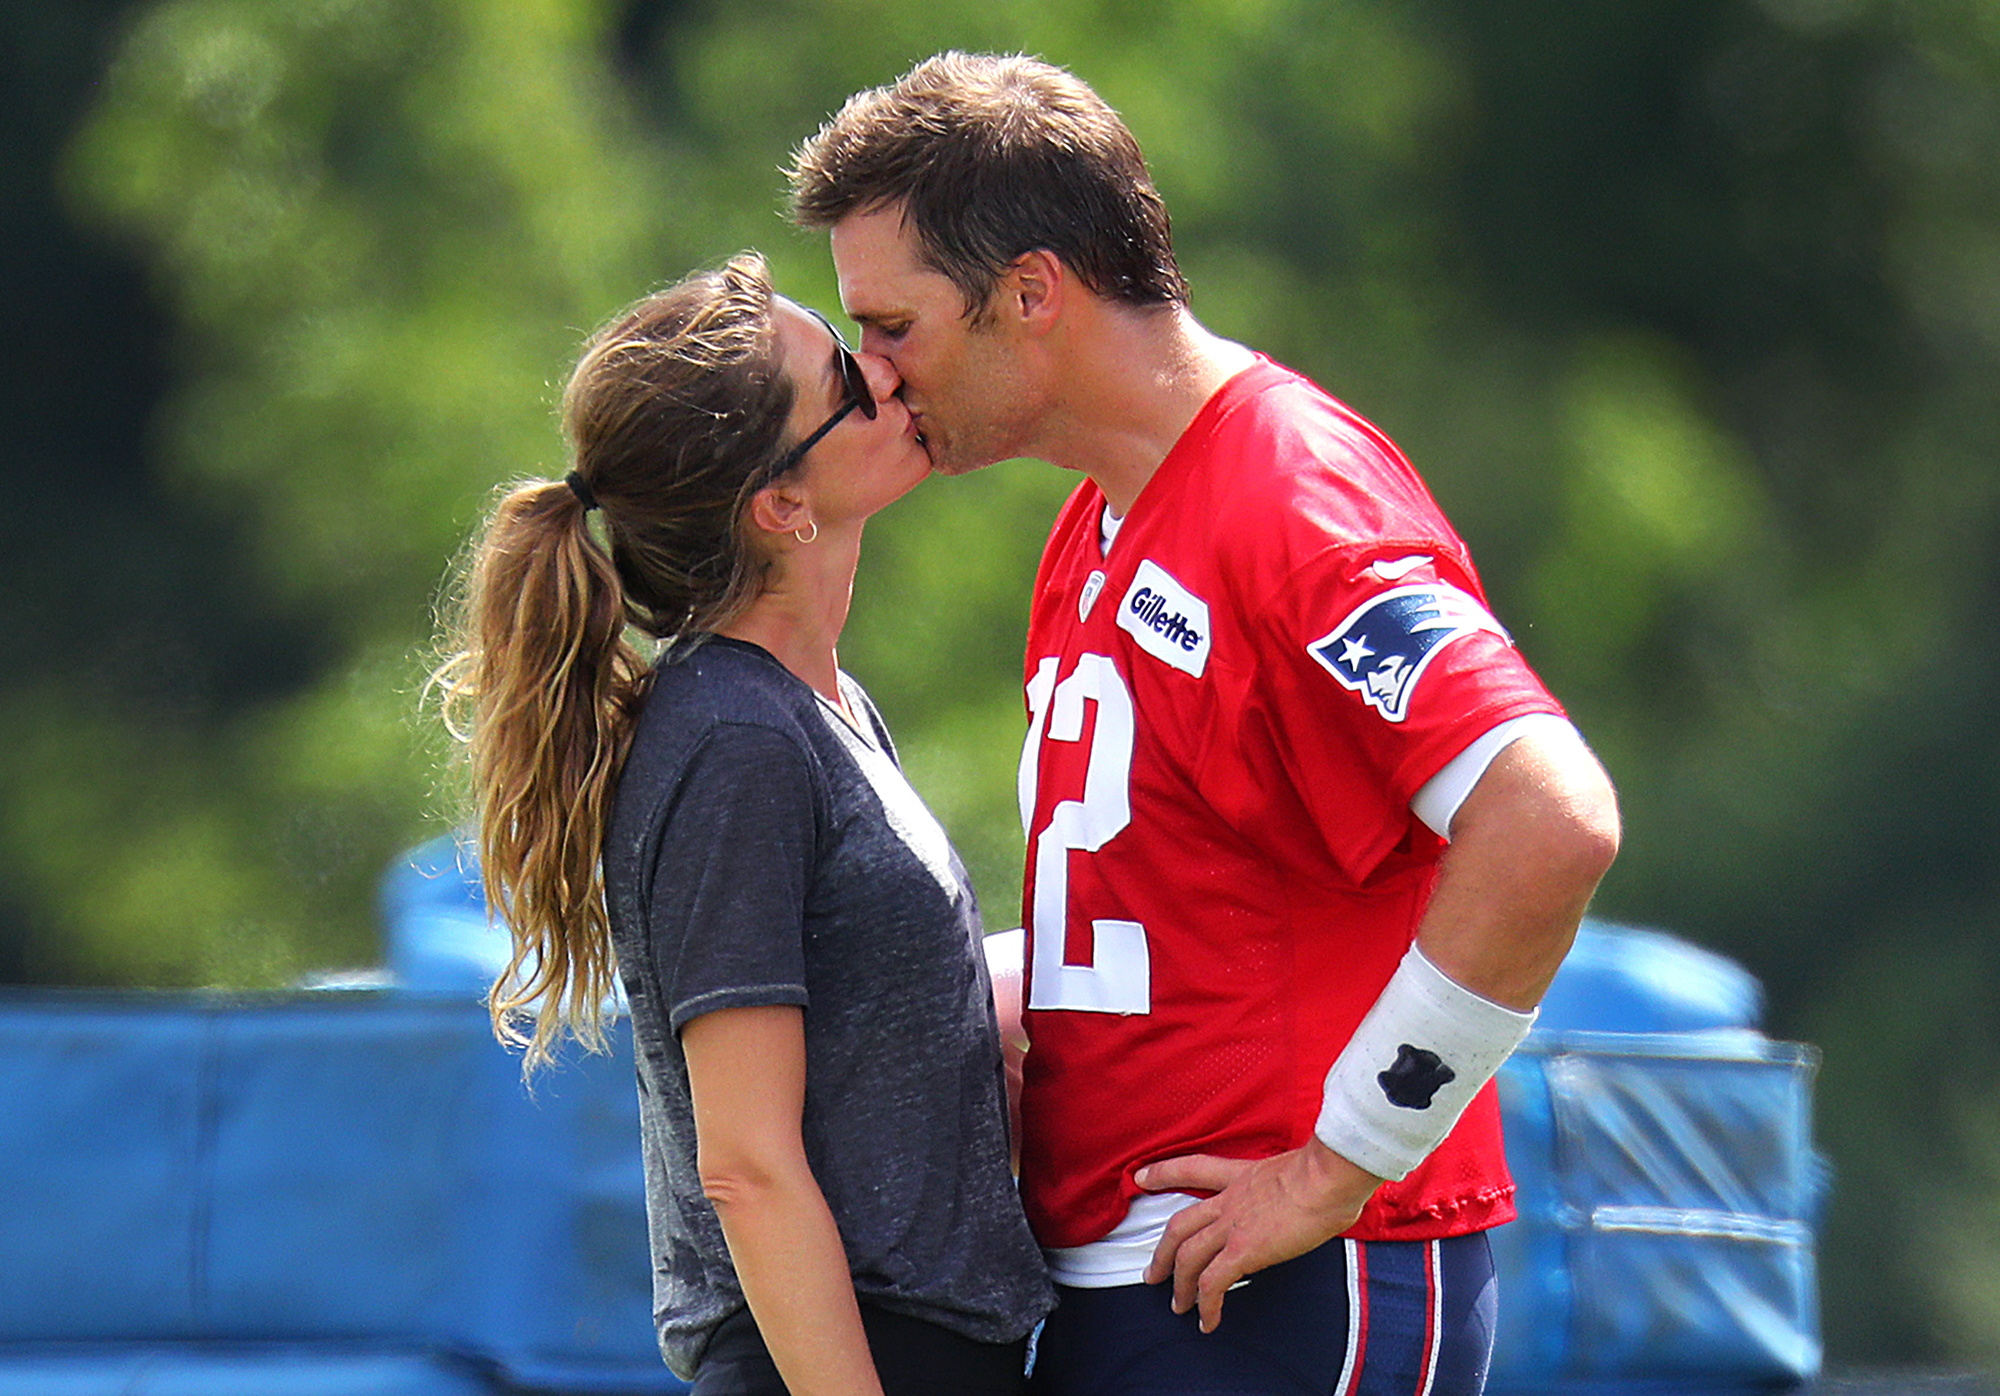 Tom Brady and Gisele Bundchen: A Timeline of Their Relationship - Three years later, the Brady family grew again. The Brazilian model gave birth to their daughter, Vivian, in December 2012.